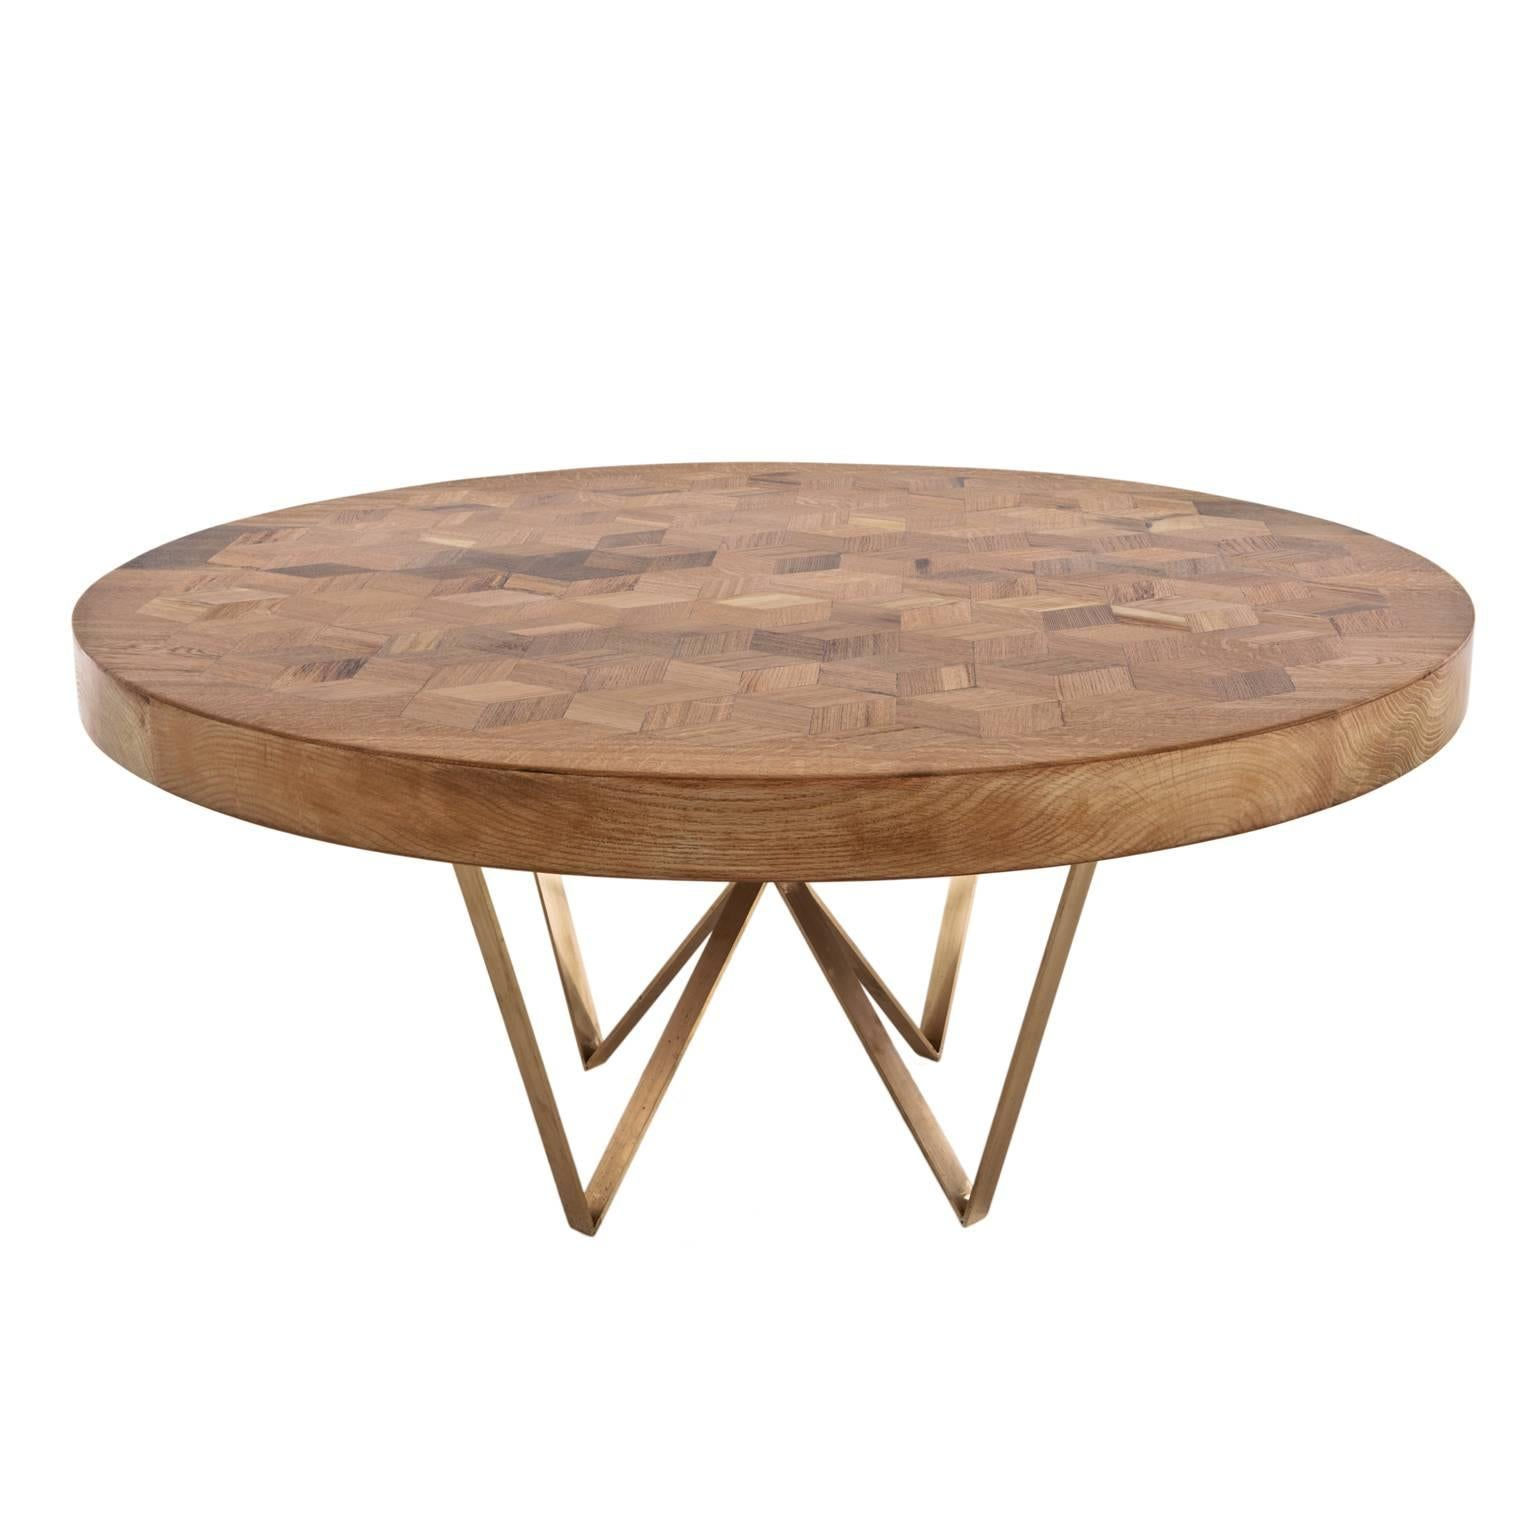 Maurits Round Marquetry Table in Reclaimed Oak with Brass Legs